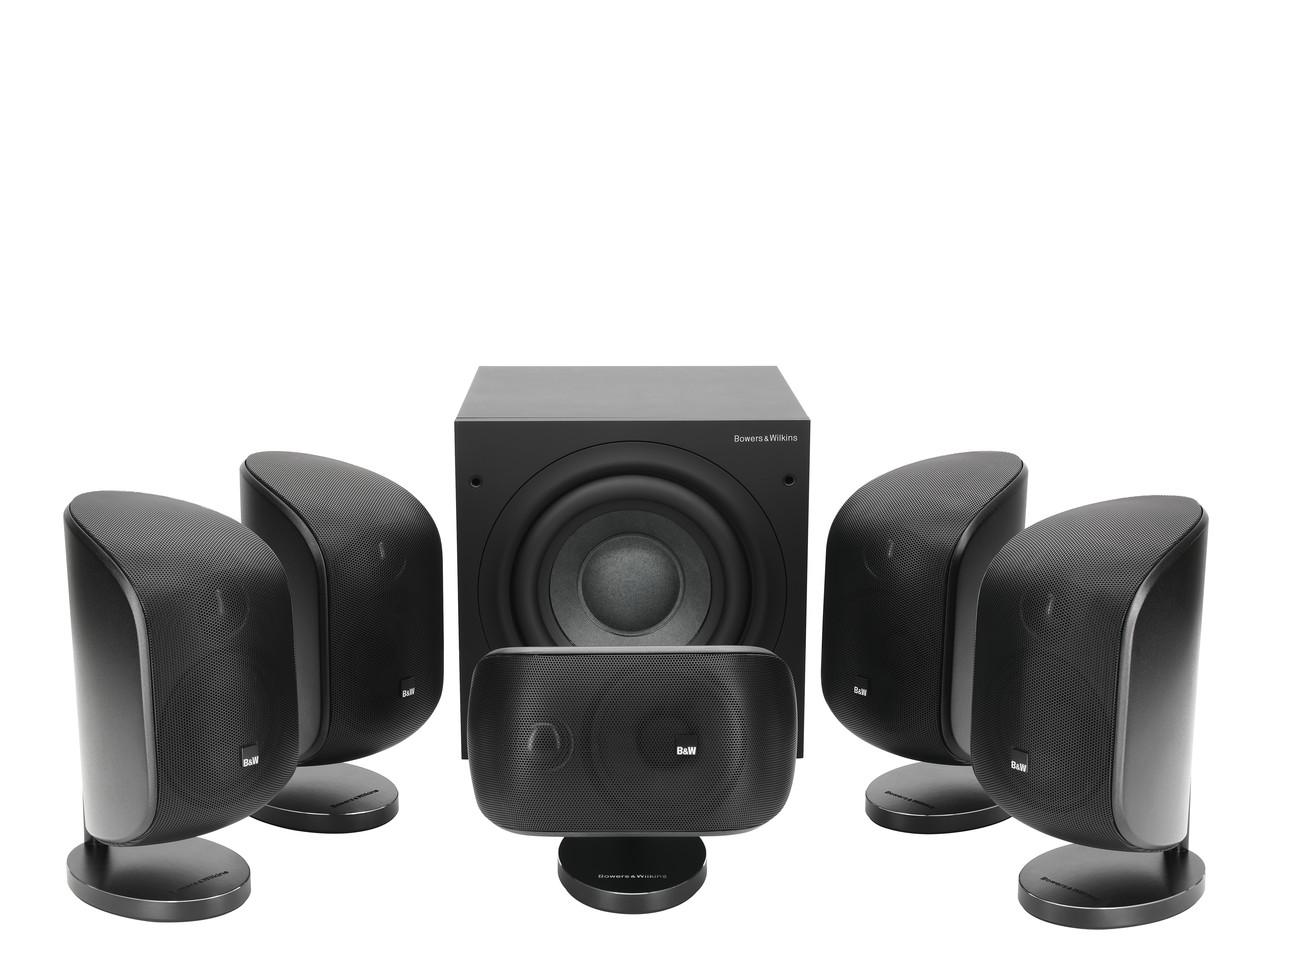 Bowers & Wilkins MT 50 Atmos 5 1 2 Home Theatre Setup